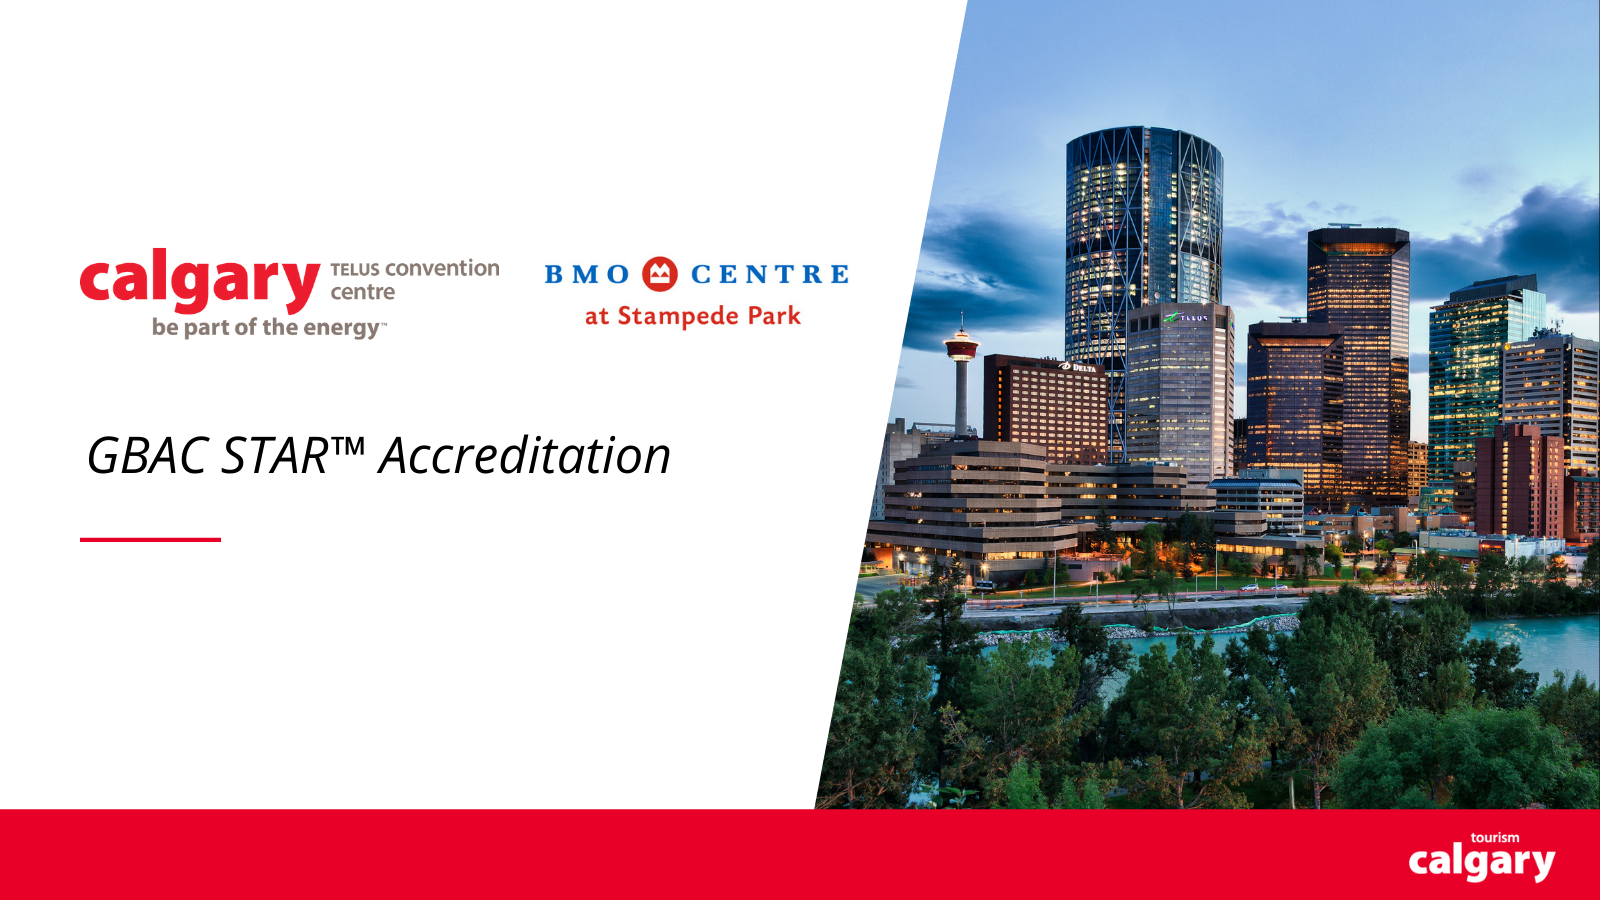 Calgary's Largest Convention Venues Receive GBAC STAR™ Accreditation